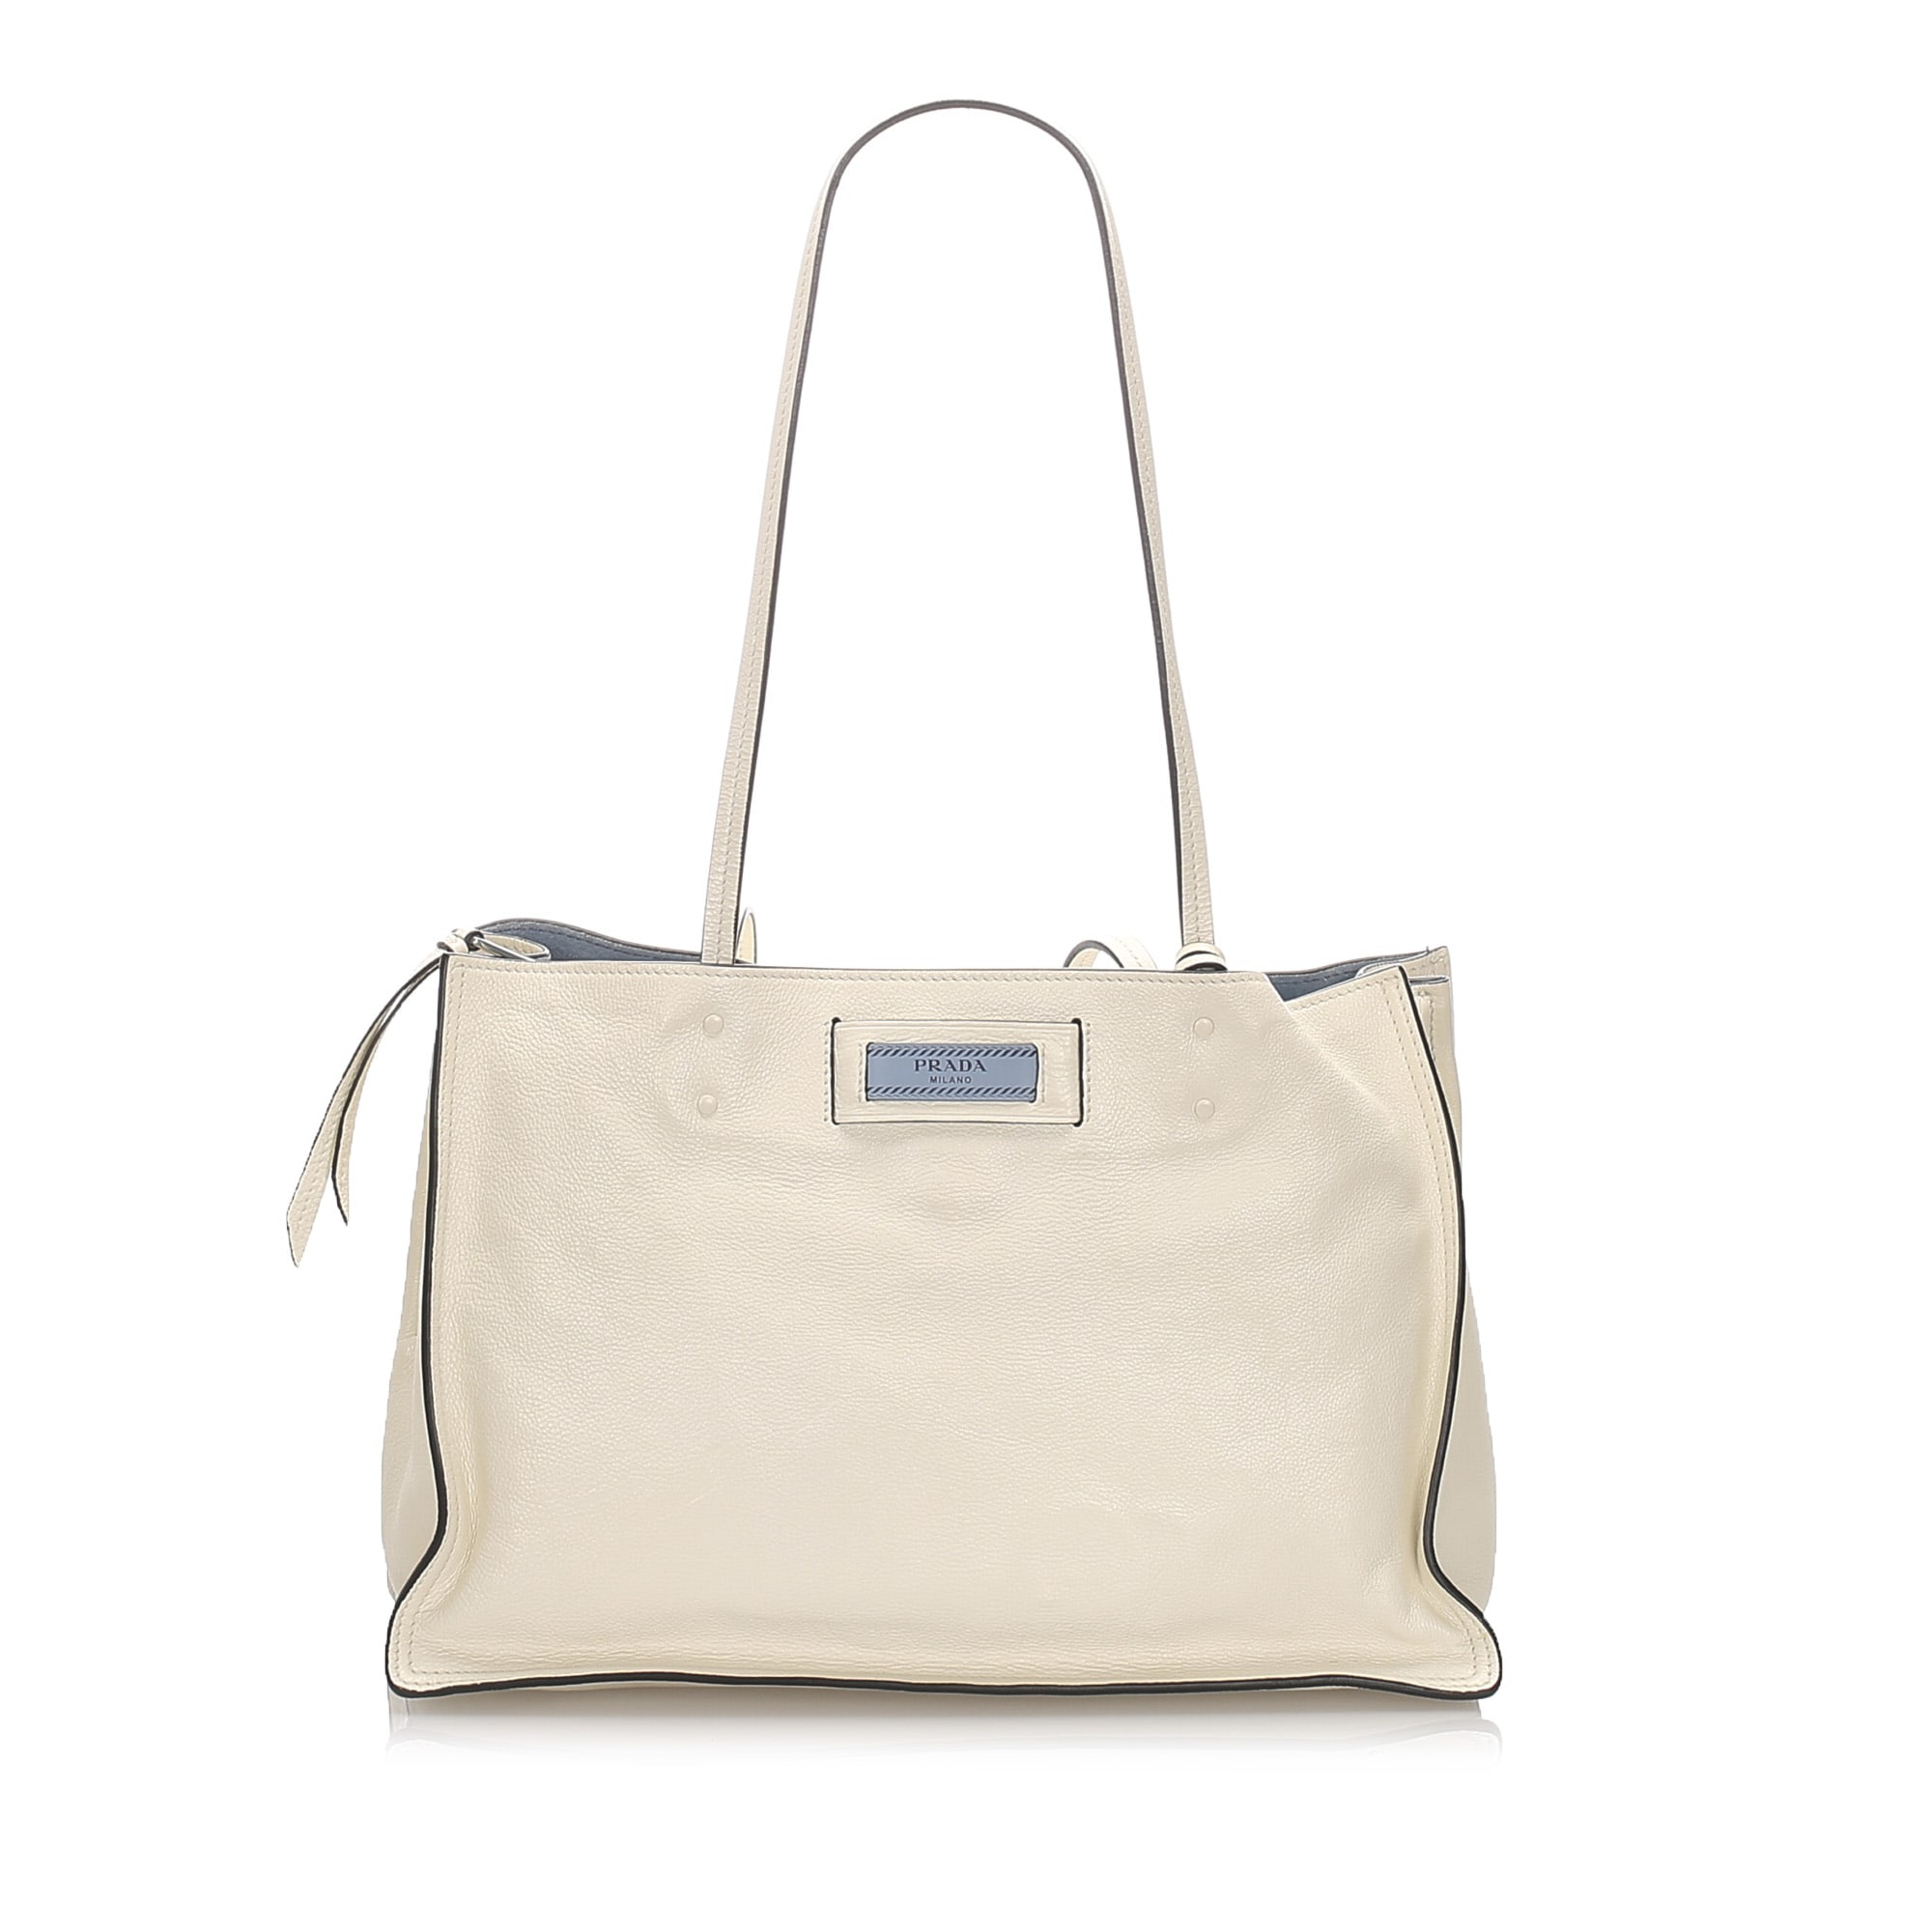 Leather Shoulder Bag PRADA White